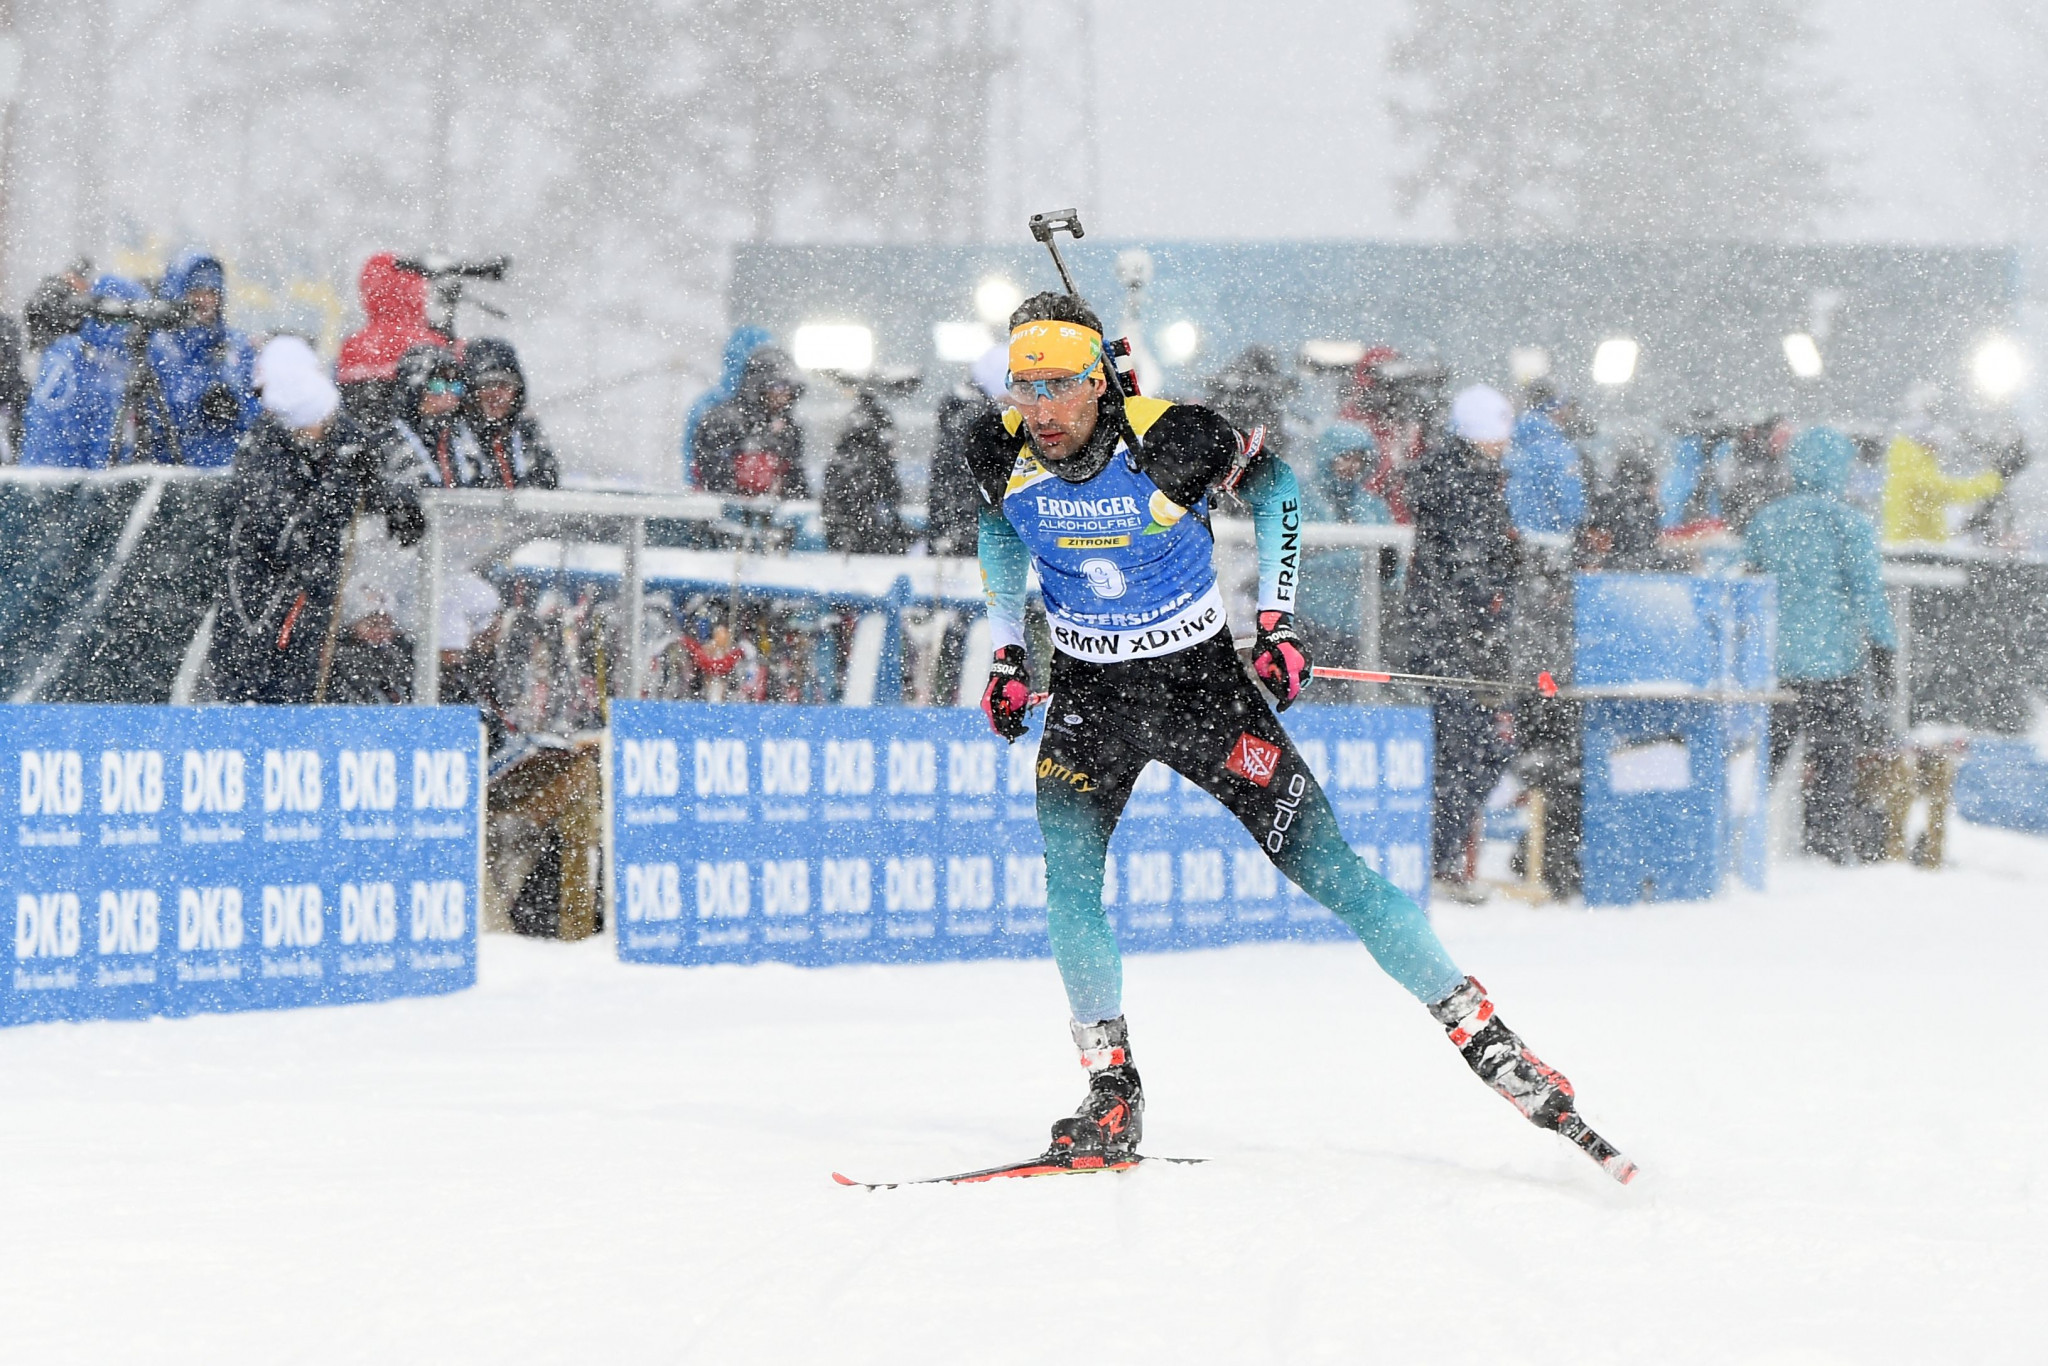 The event is being organised by French biathlon legend Martin Fourcade ©Getty Images